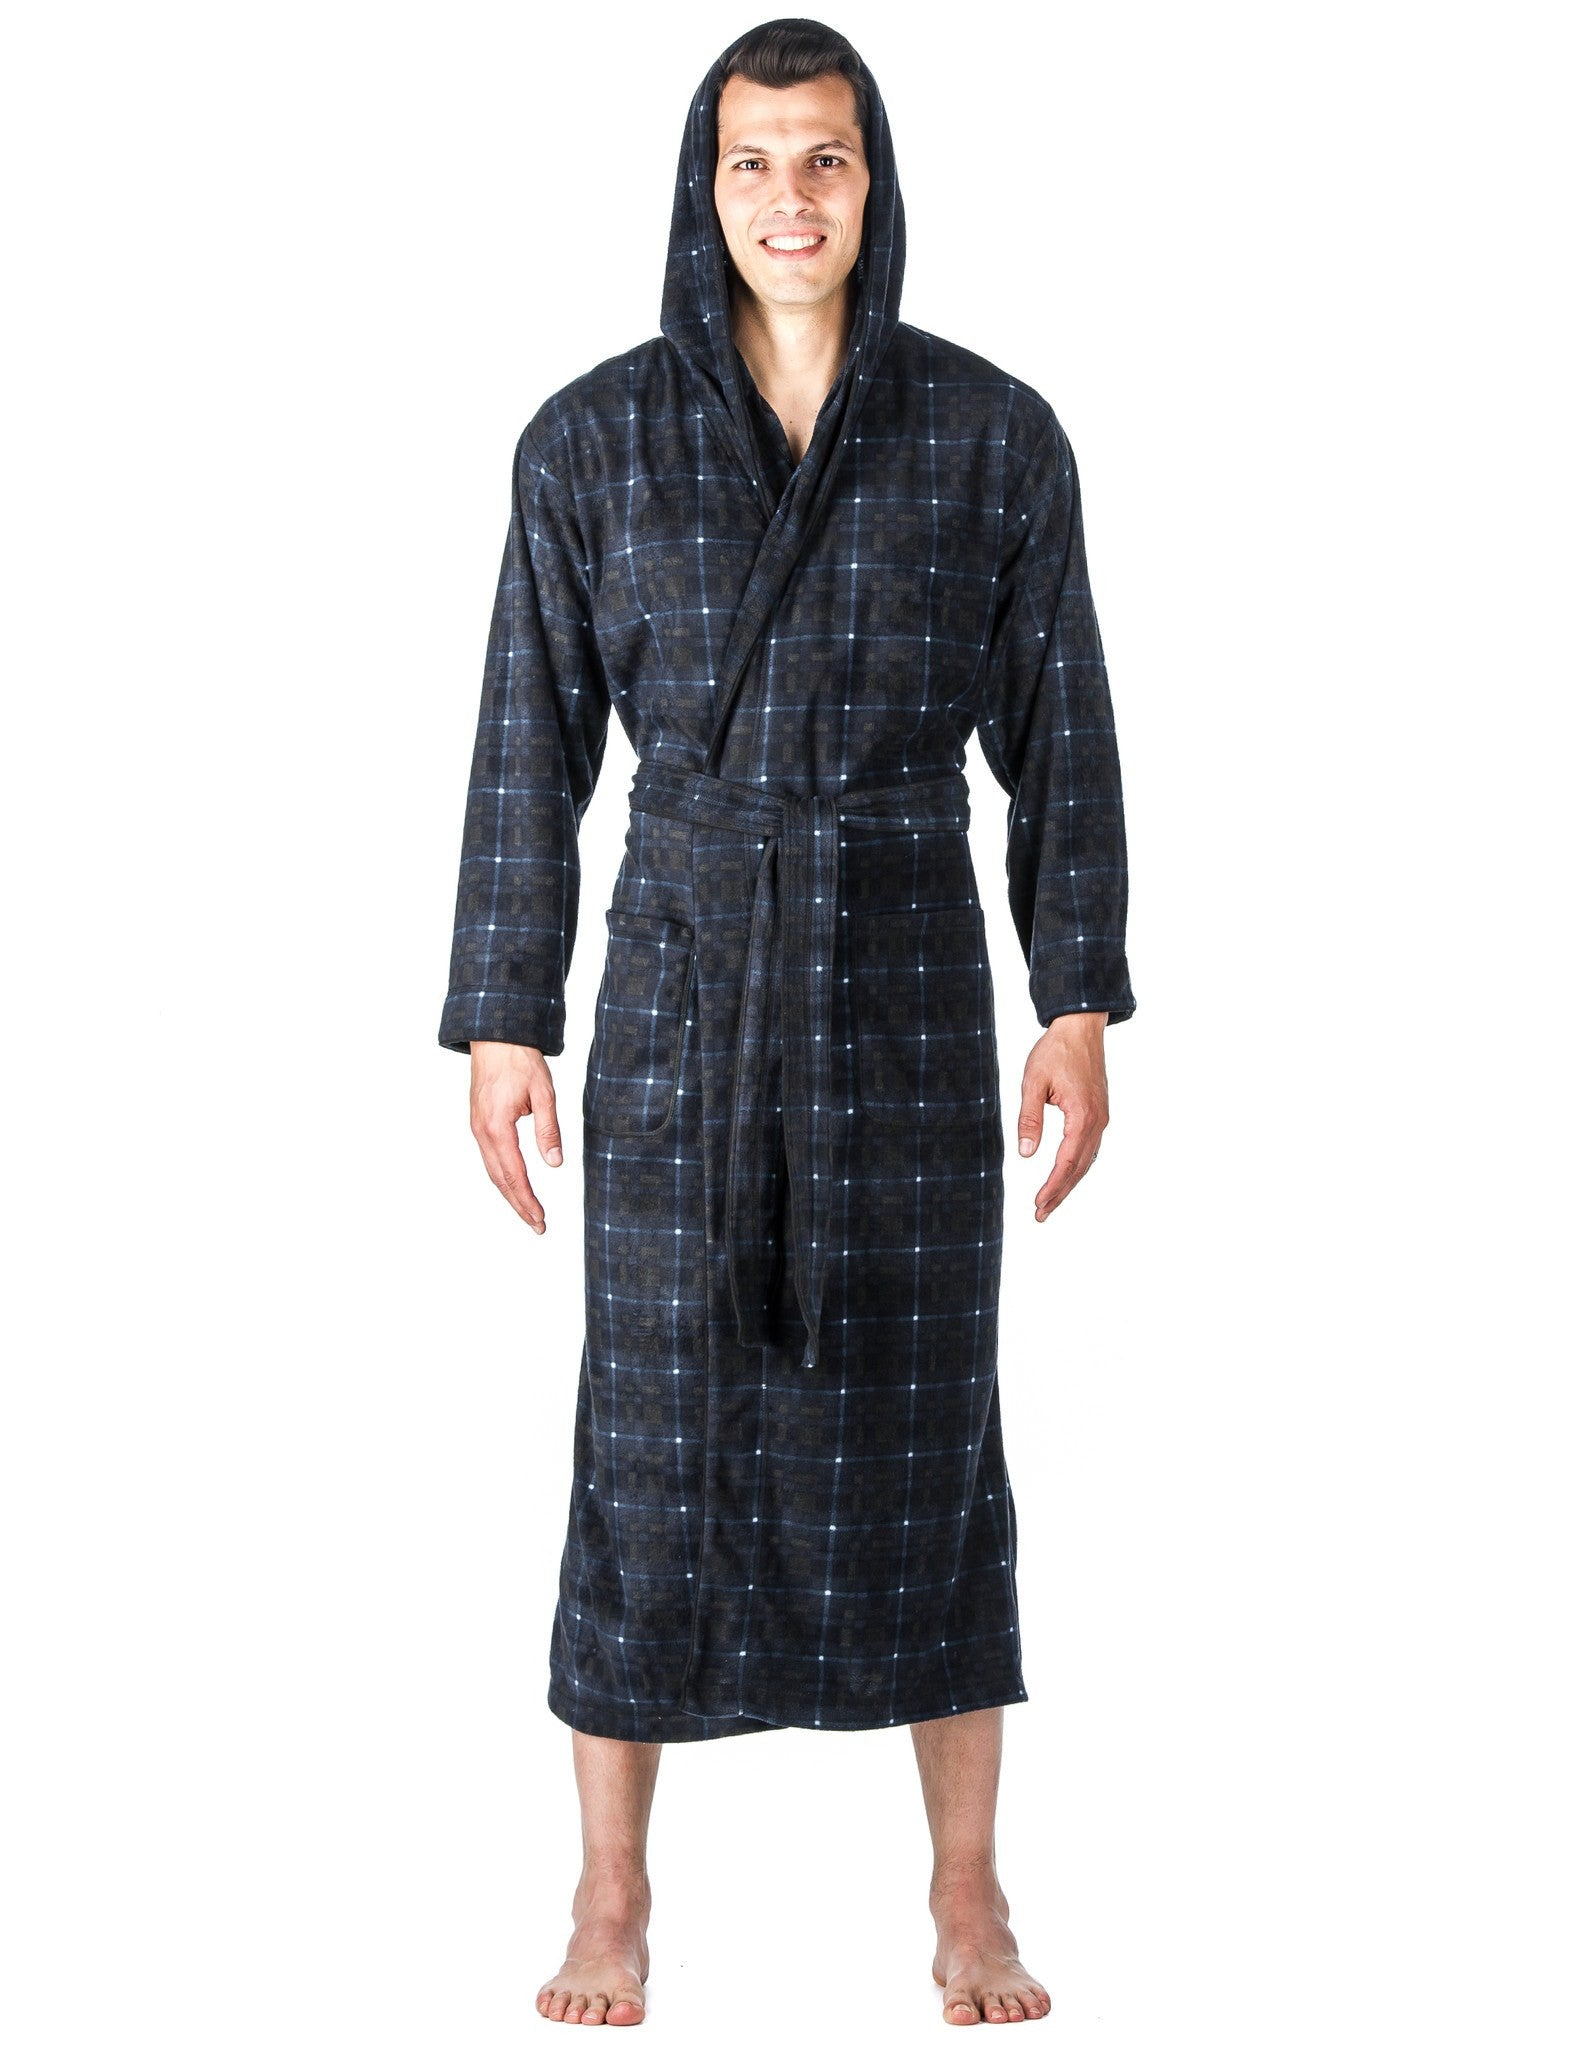 noble mount men 39 s microfleece hooded robe. Black Bedroom Furniture Sets. Home Design Ideas